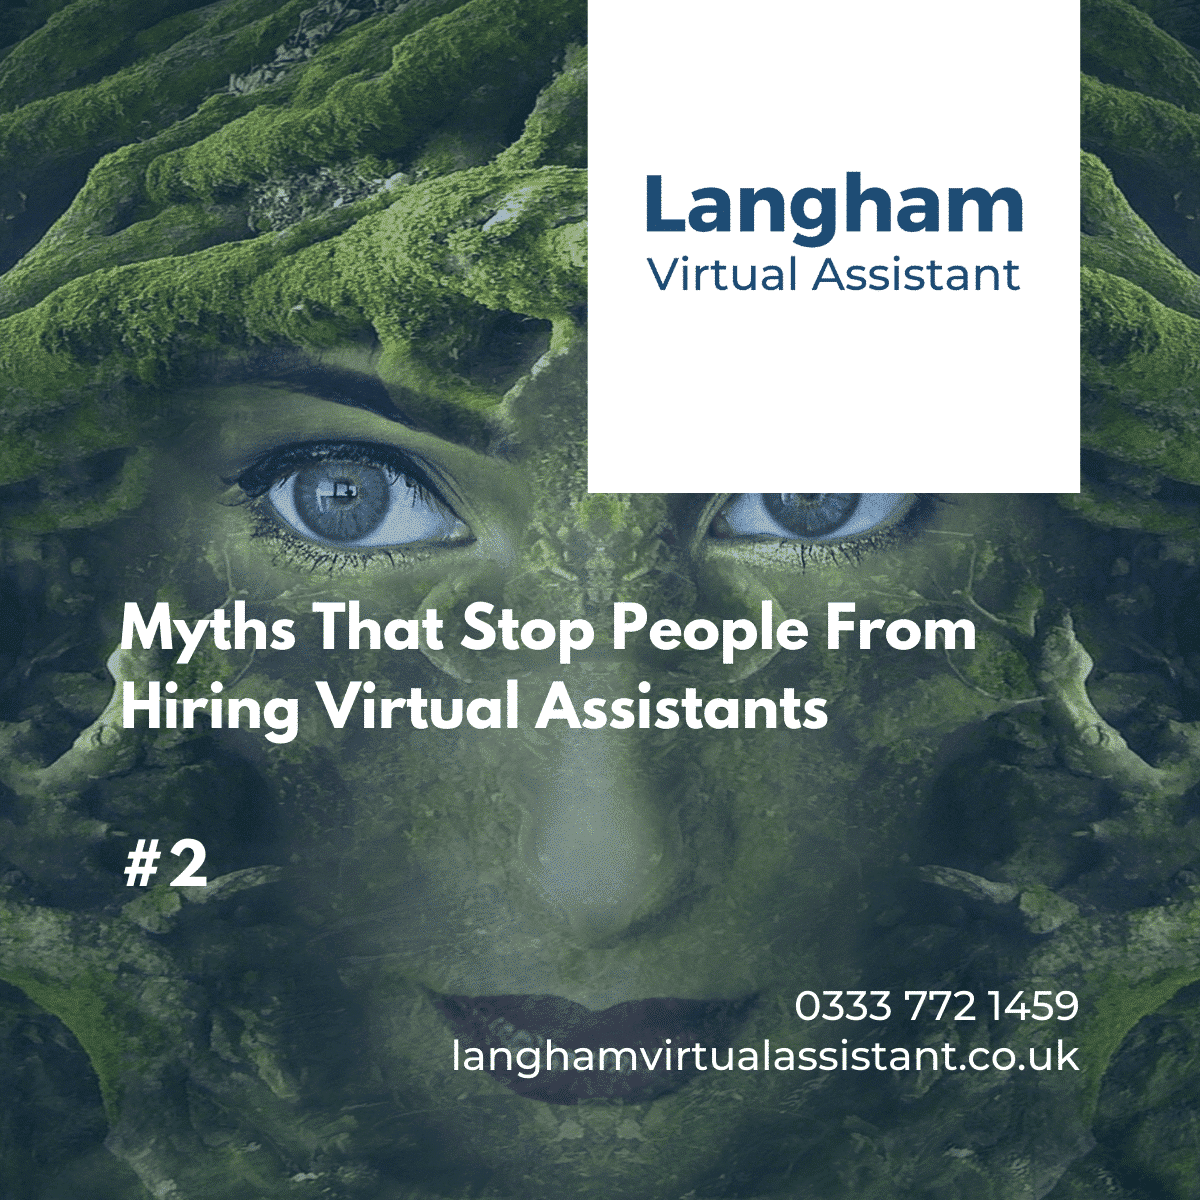 Myths That Stop People From Hiring Virtual Assistants #2